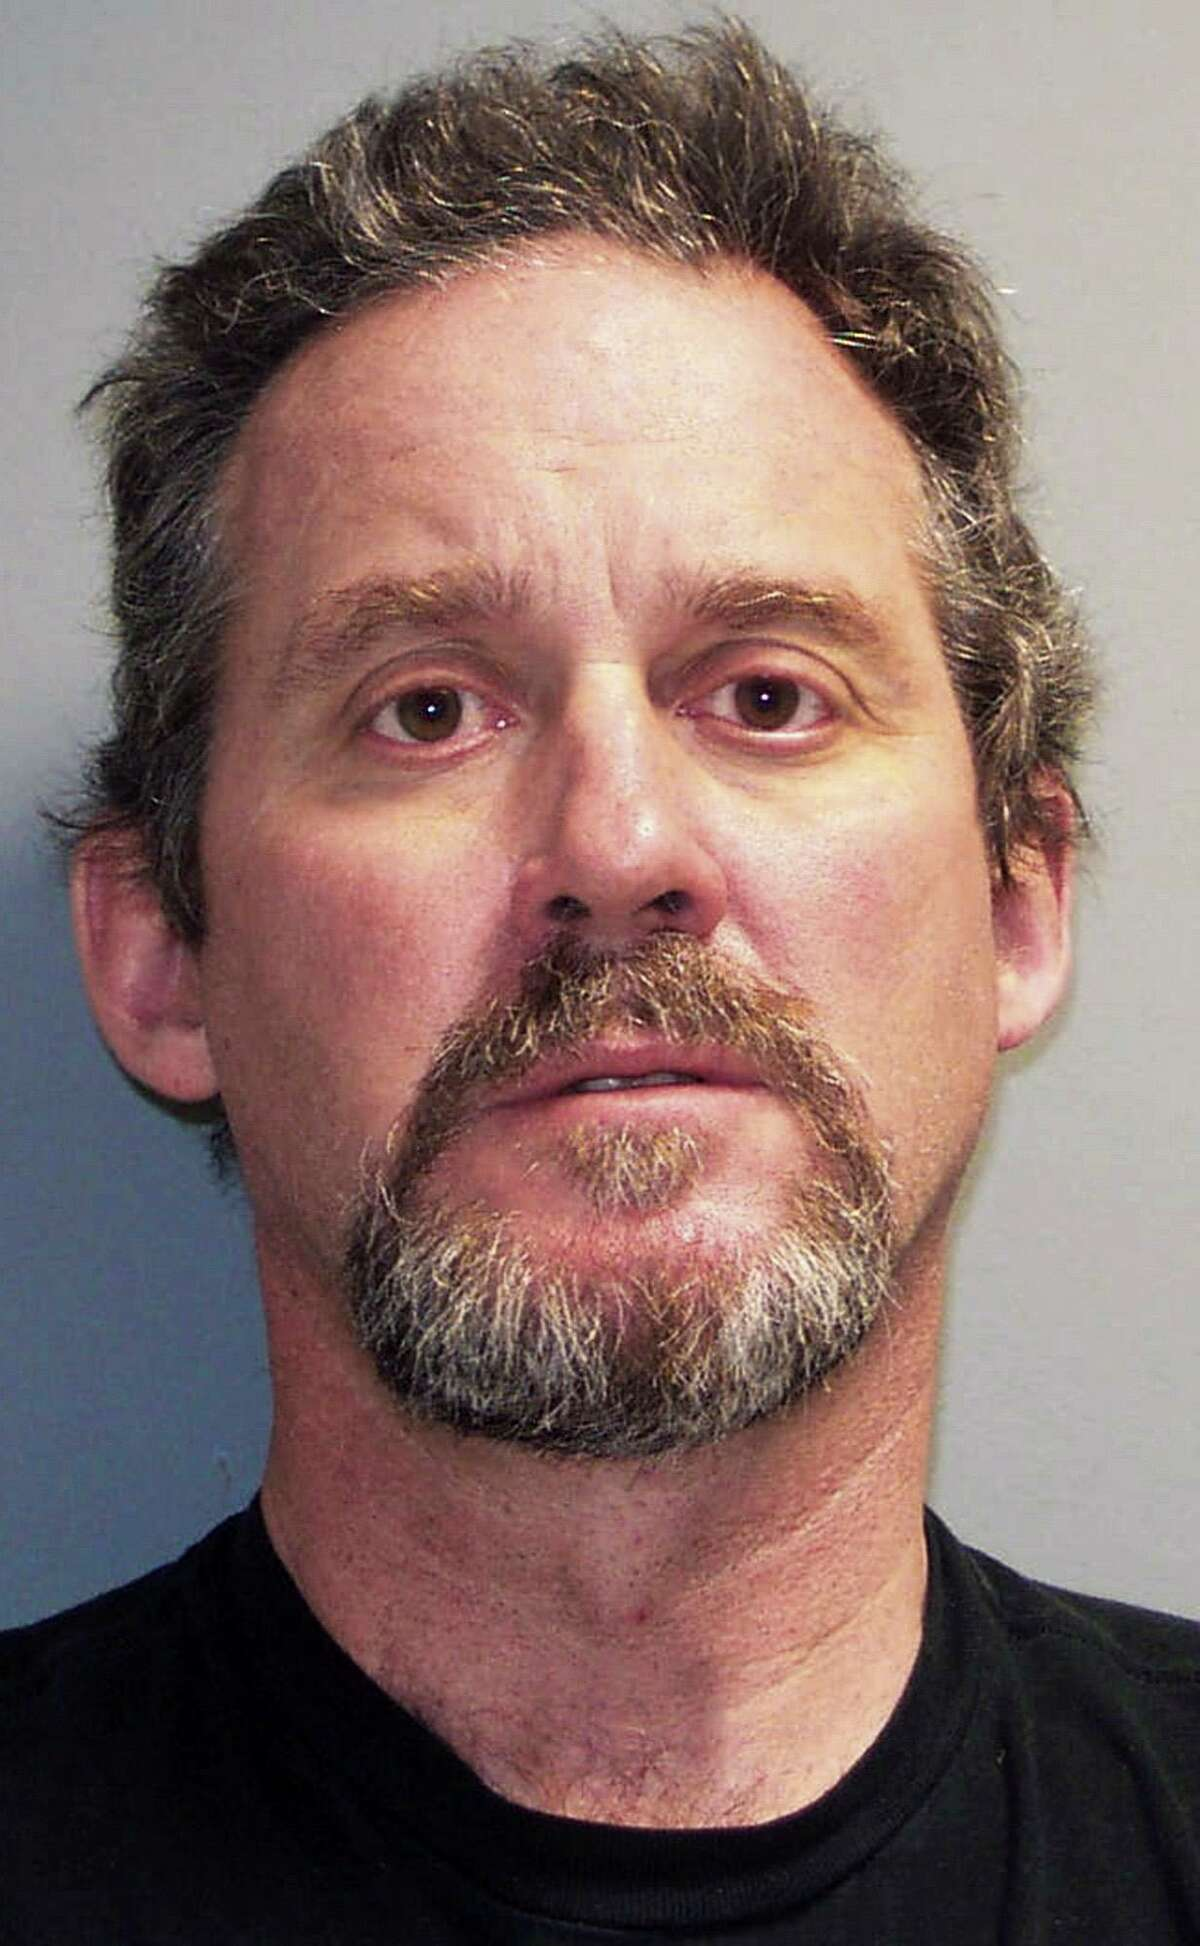 John Tate, 54, a teacher at Brien McMahon High School from Trumbull was arrested in 2010 and charged with second-degree sexual assault.